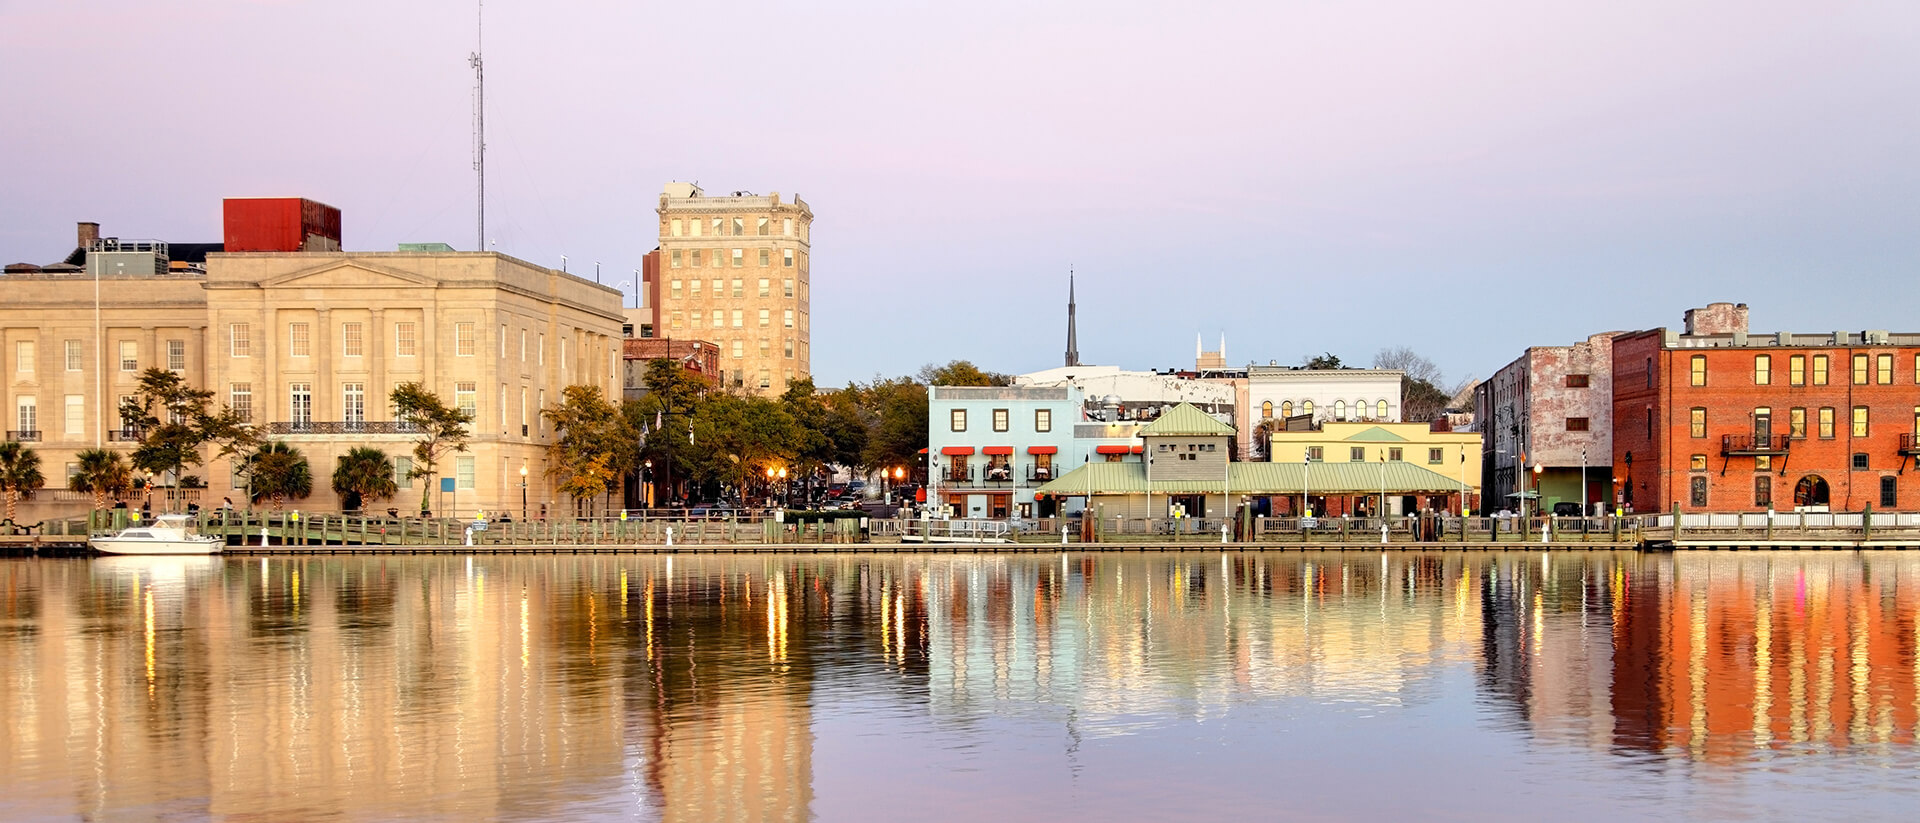 Wilmington, North Carolina, United States of America